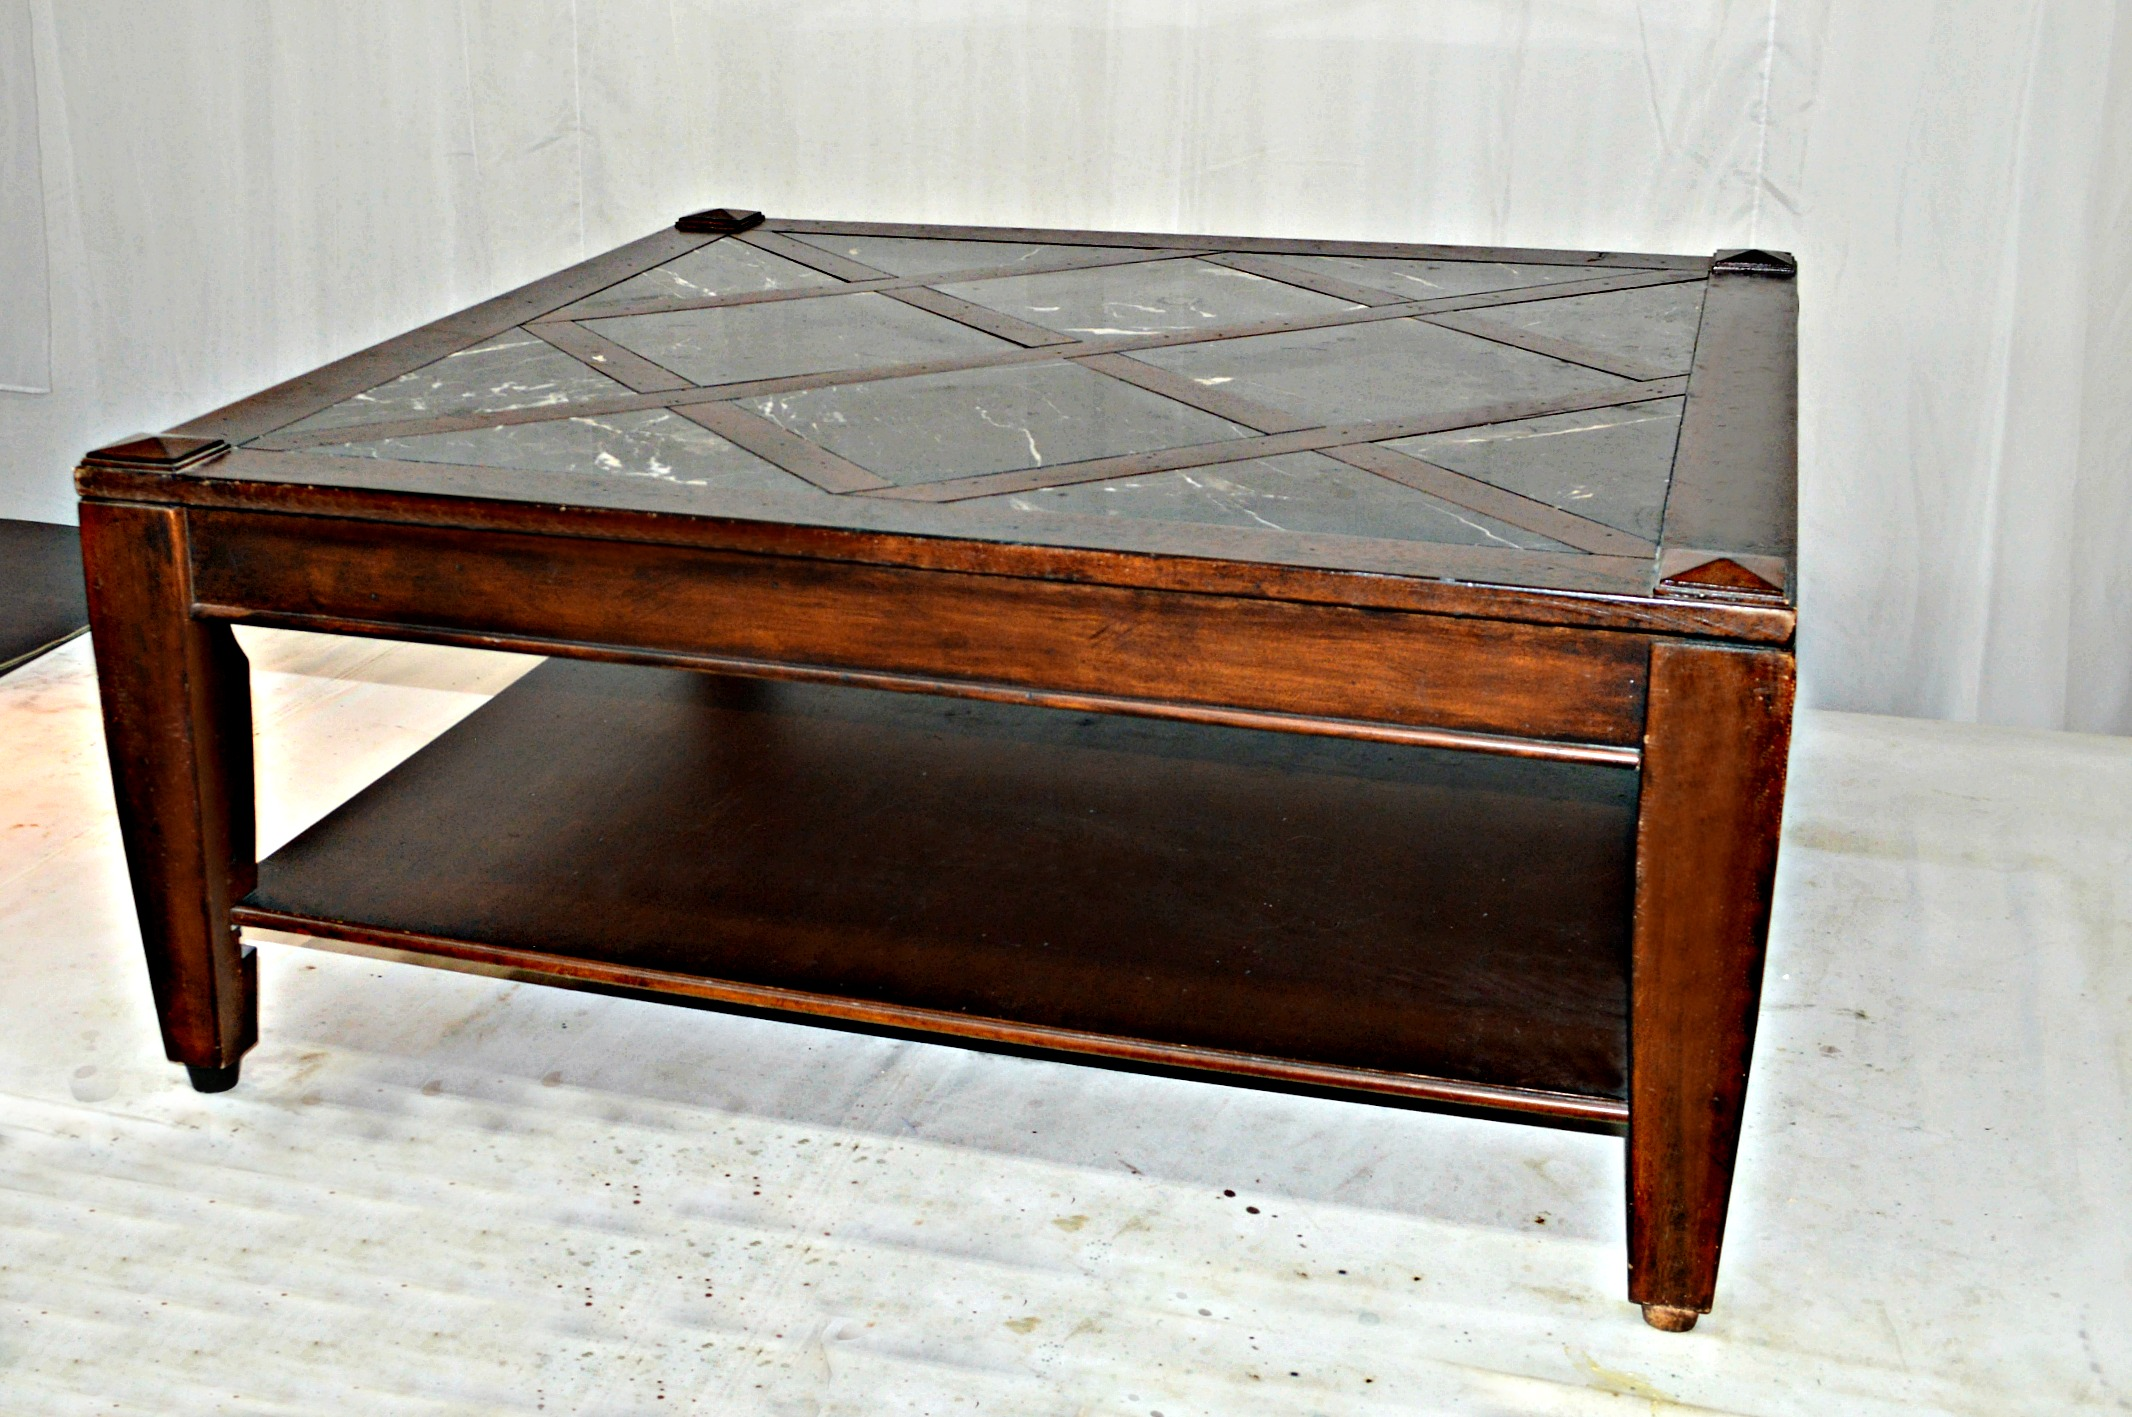 Vintage Great Coffee Table Made Of Solid Wood. Lattice Design On Top With  Black Marble